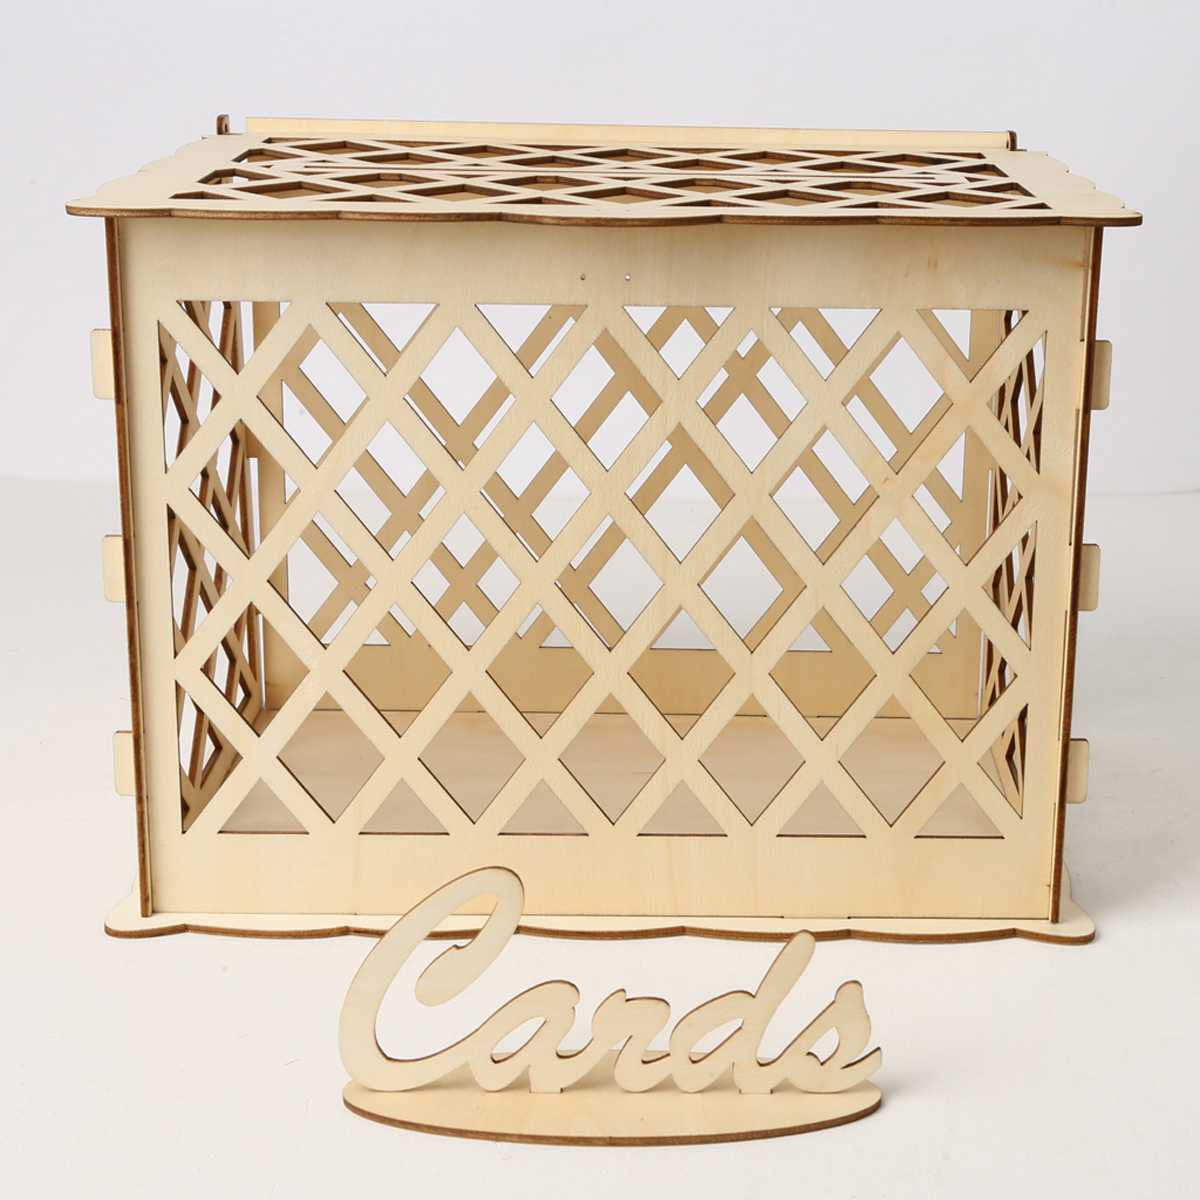 30*24*22.5 Fence Shape Wooden Wedding Gift Box Wooden Card Money Box Wedding Decoration Supplies For Birthday Party30*24*22.5 Fence Shape Wooden Wedding Gift Box Wooden Card Money Box Wedding Decoration Supplies For Birthday Party